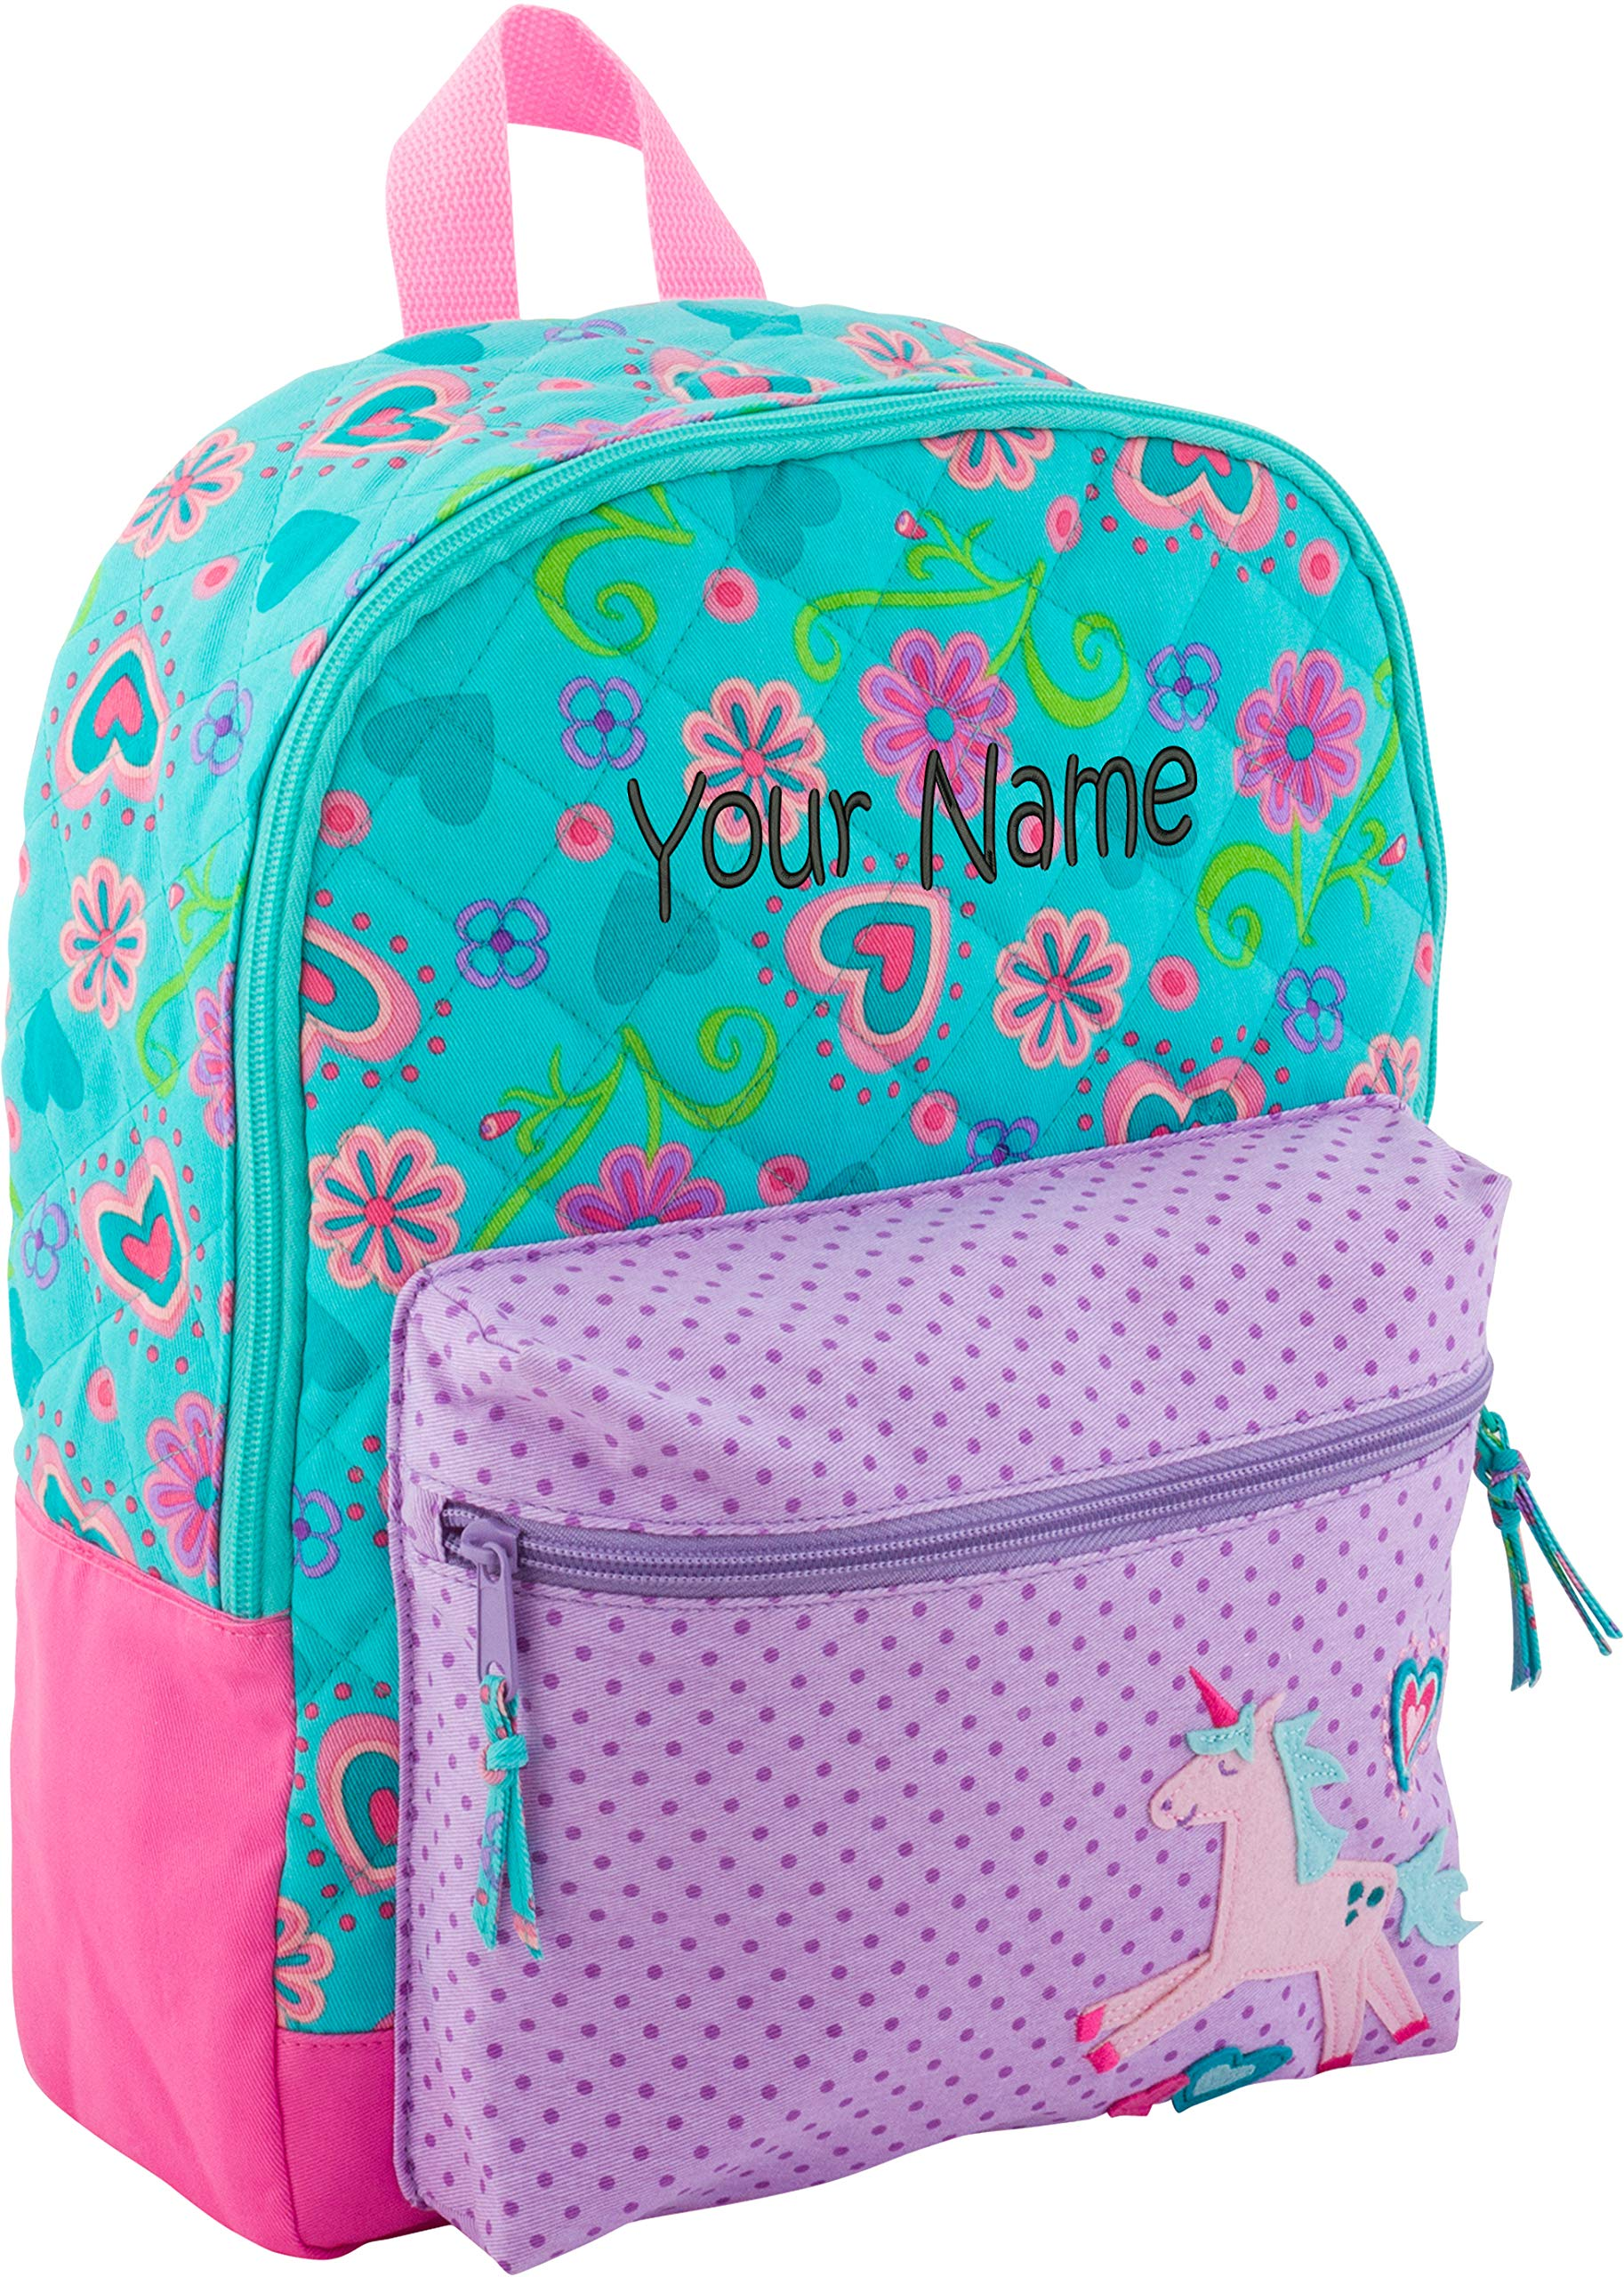 Personalized Stephen Joseph Unicorn All Over Print Quilted Rucksack with Embroidered Name by Stephen Joseph